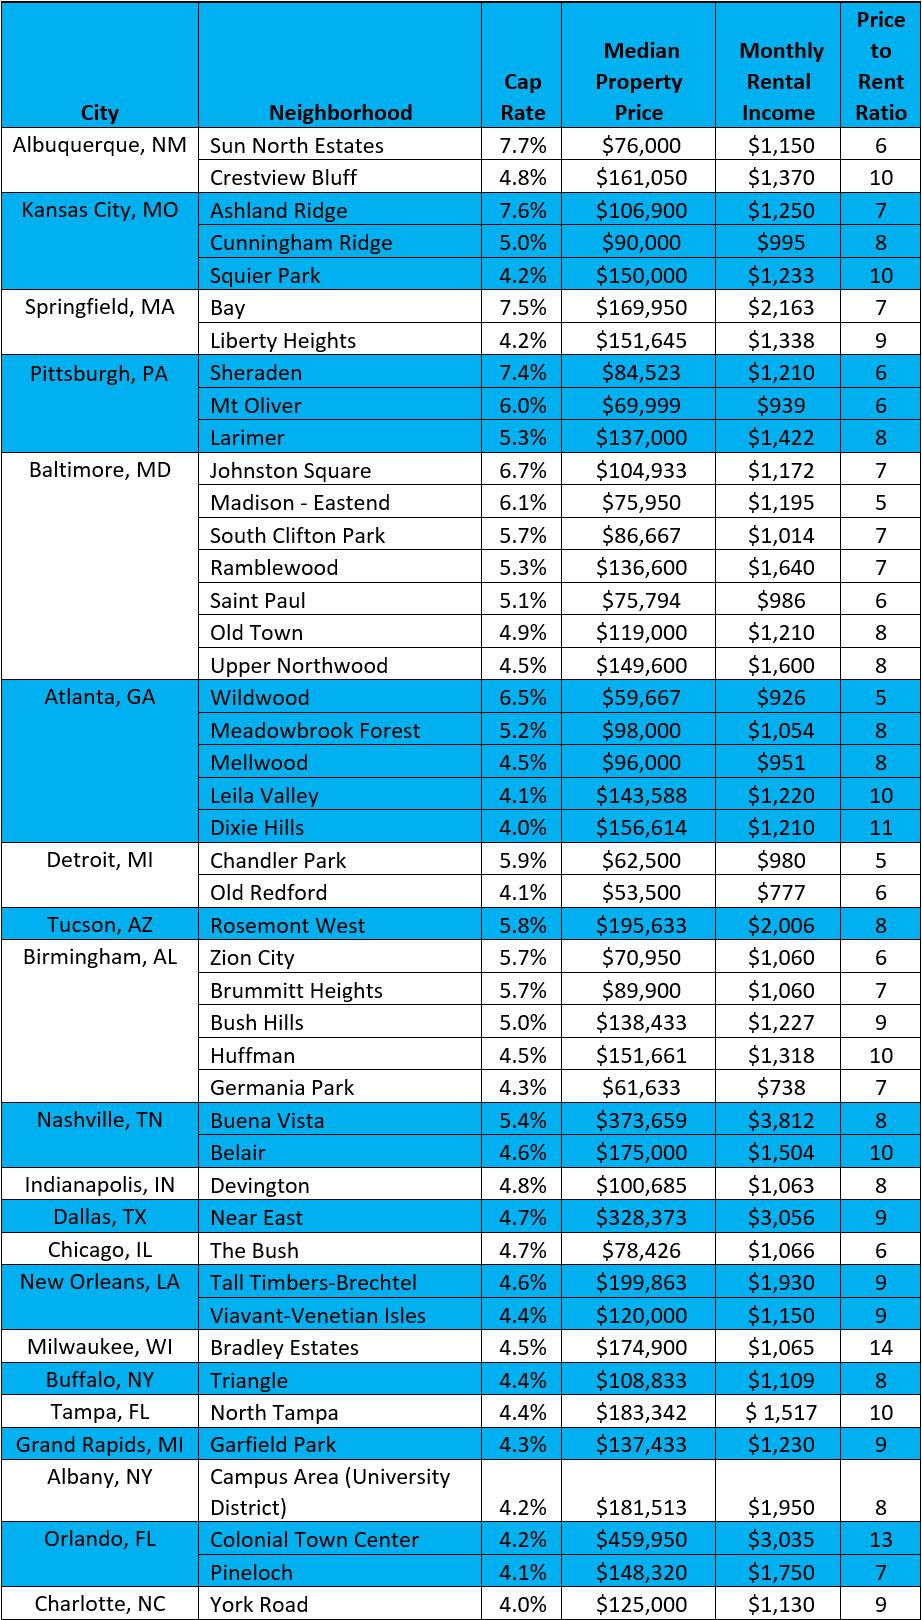 best cities by cap rate 2020